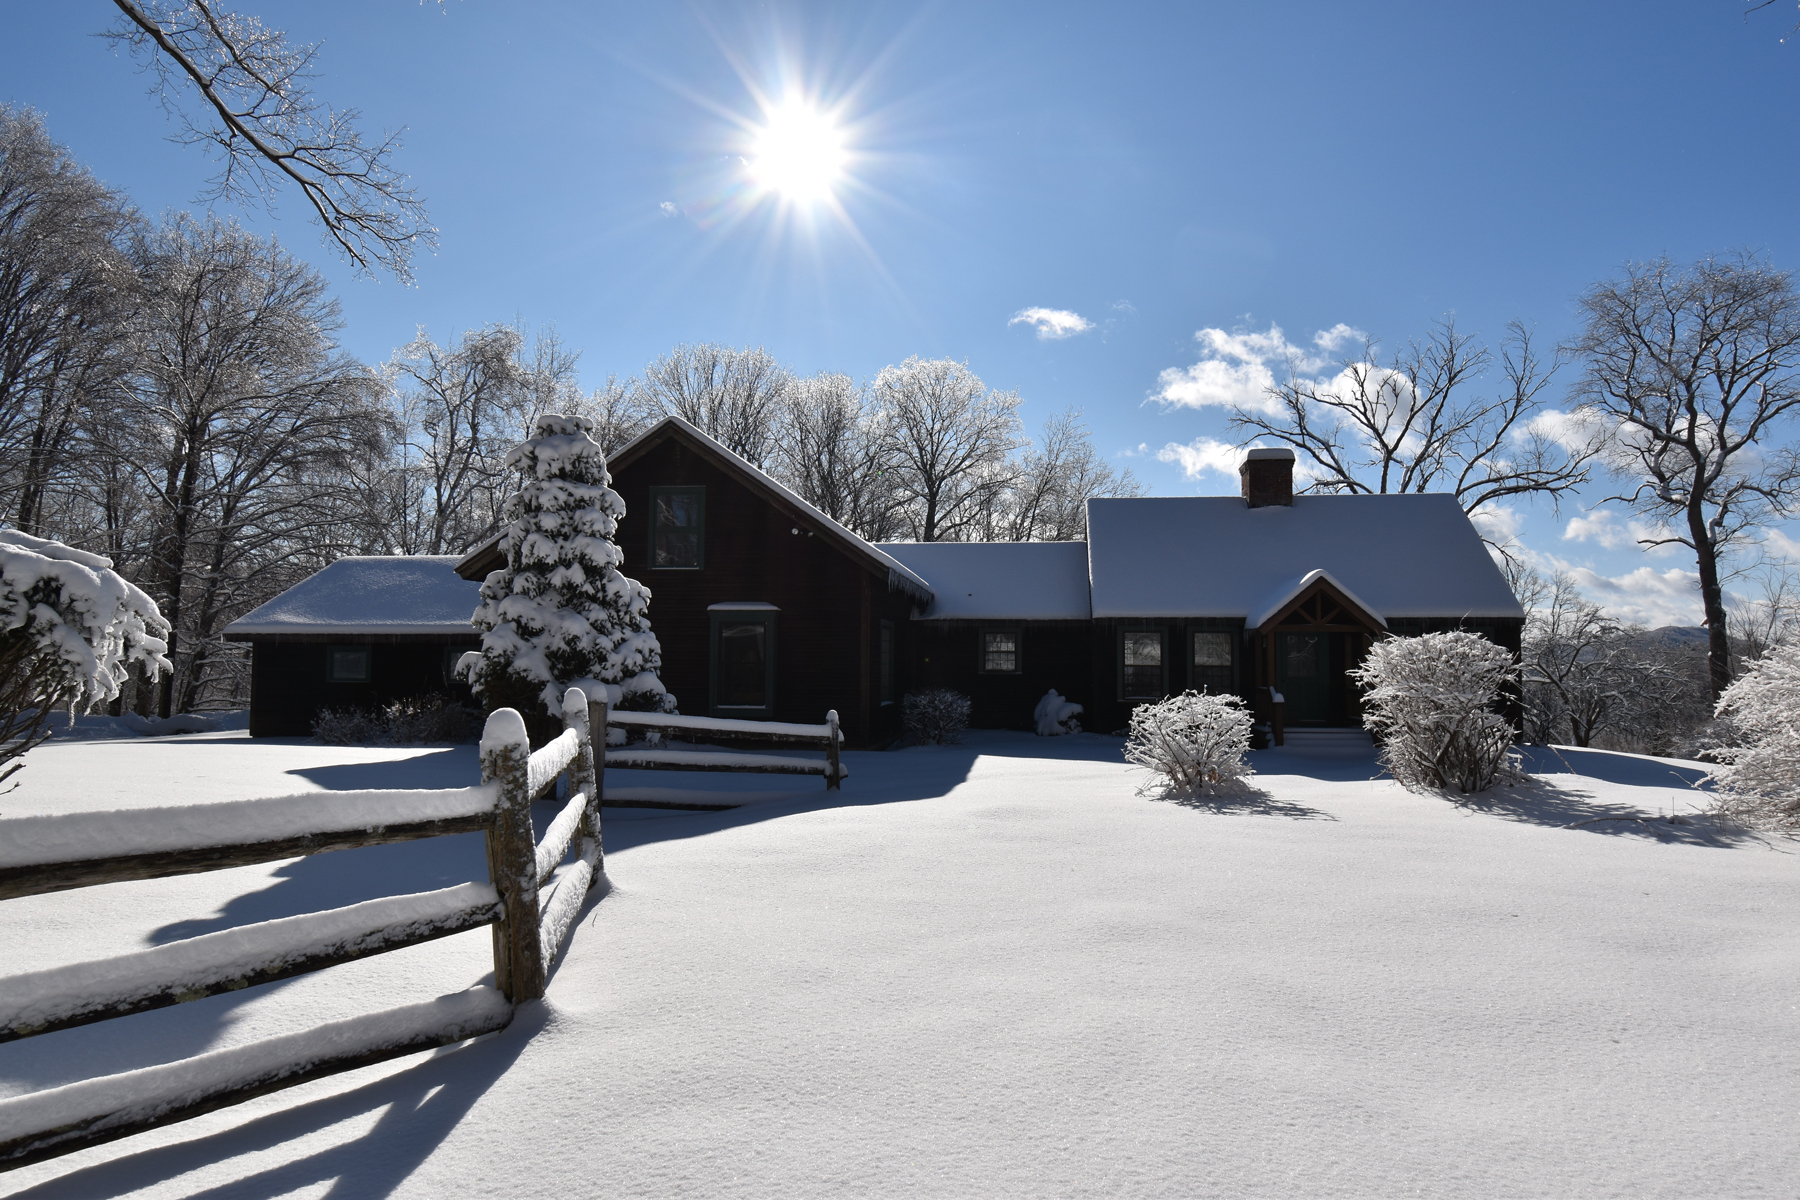 Single Family Homes for Sale at South Hill Homestead 210 South Hill Pittsford, Vermont 05763 United States